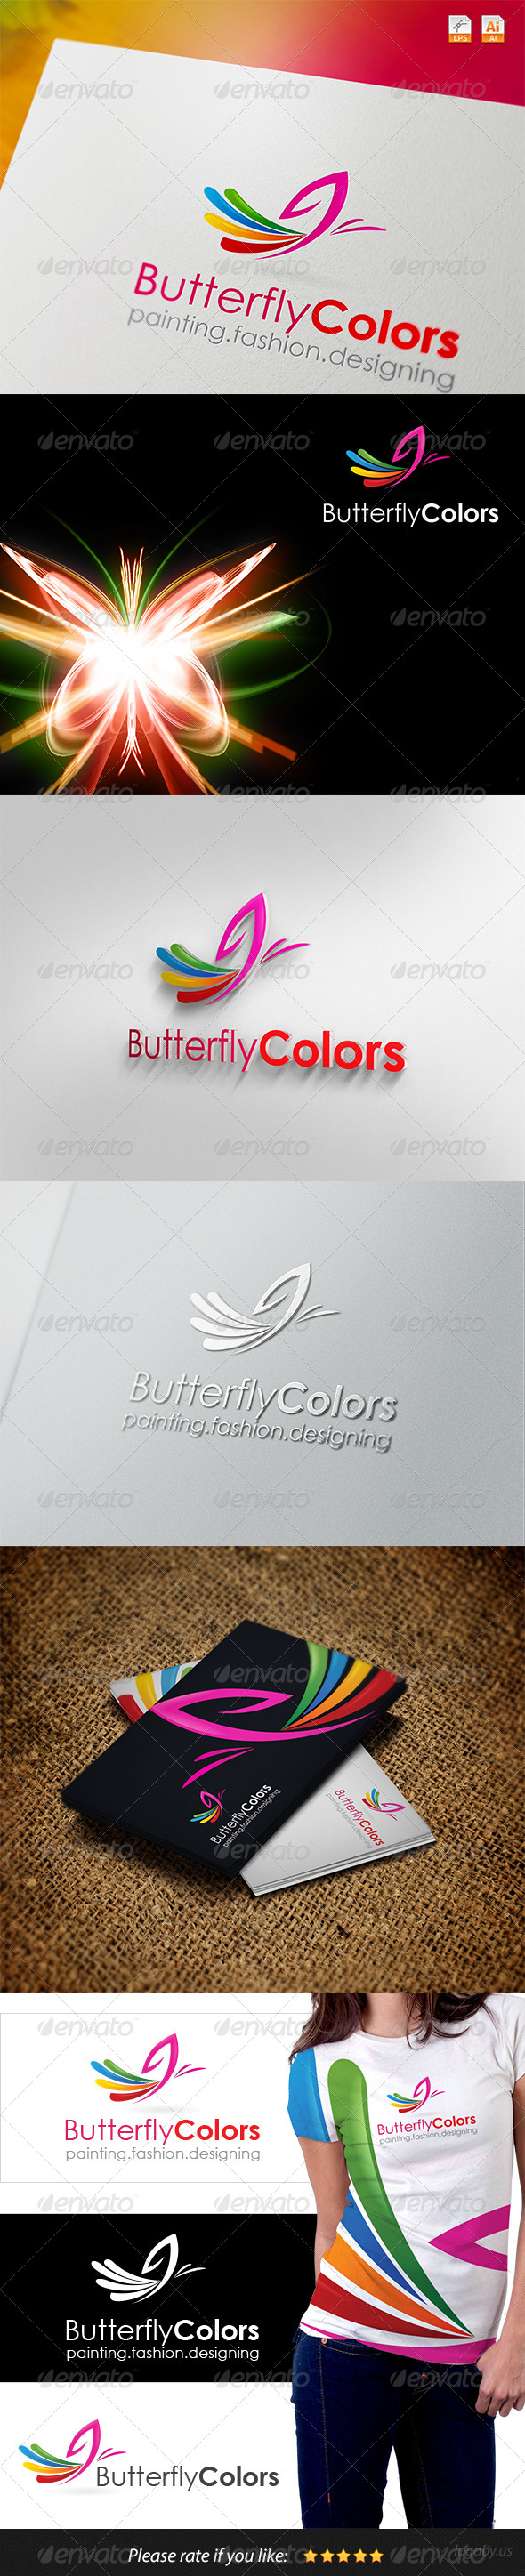 GraphicRiver Butterfly Colors Logo 4130067